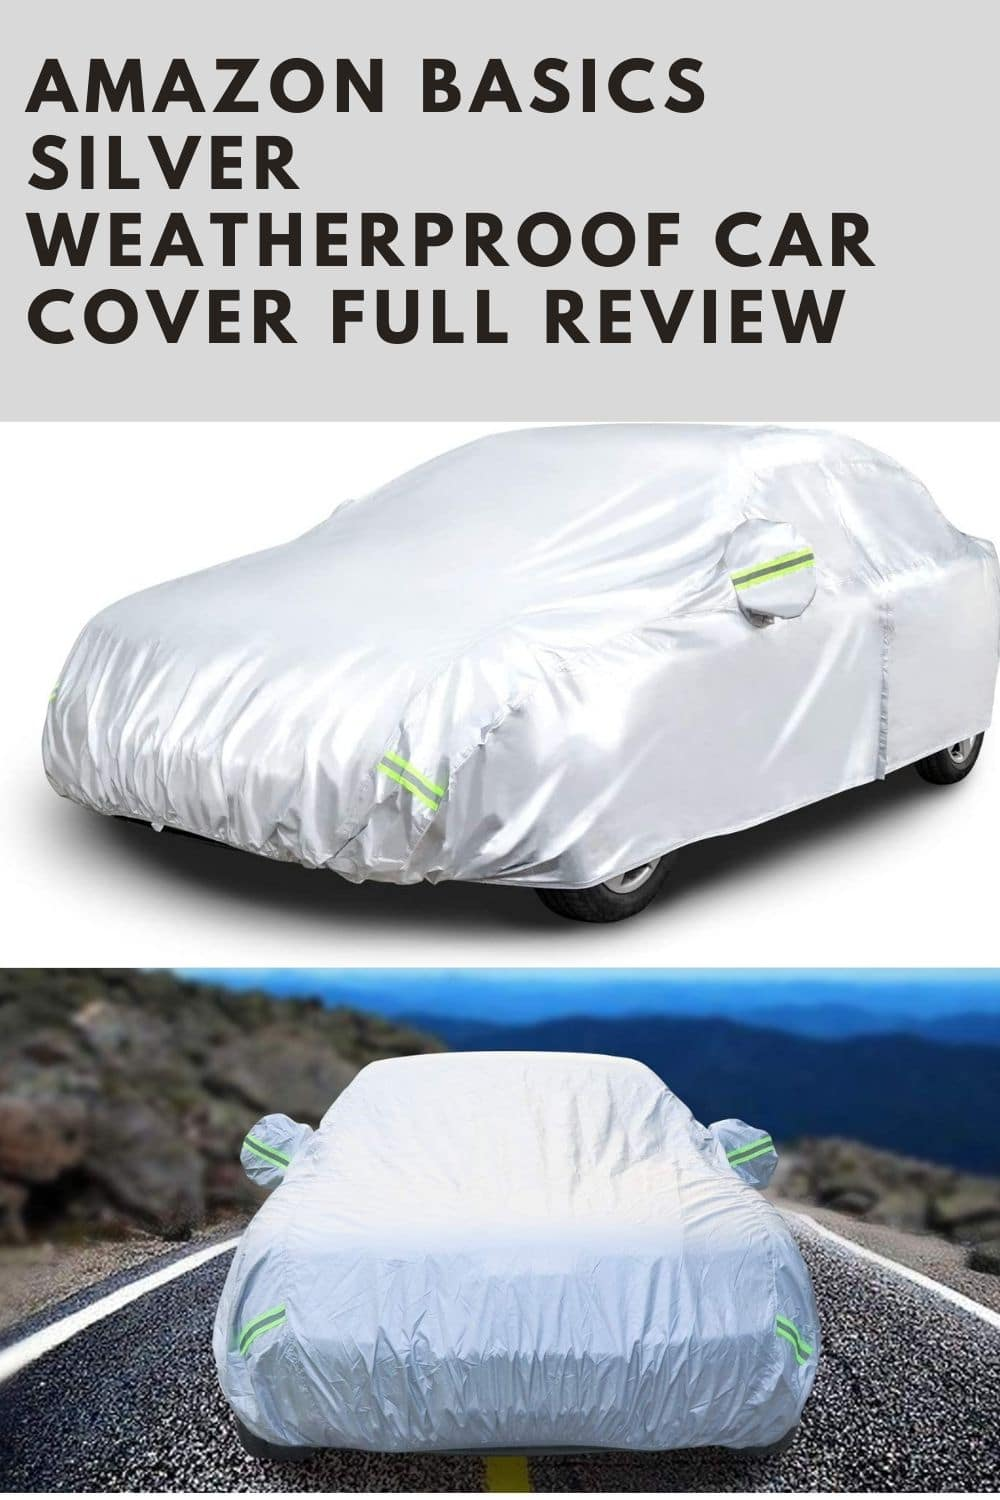 Amazon Basics Silver Weatherproof Car Cover - 150D Oxford, Sedans up to 160 full review